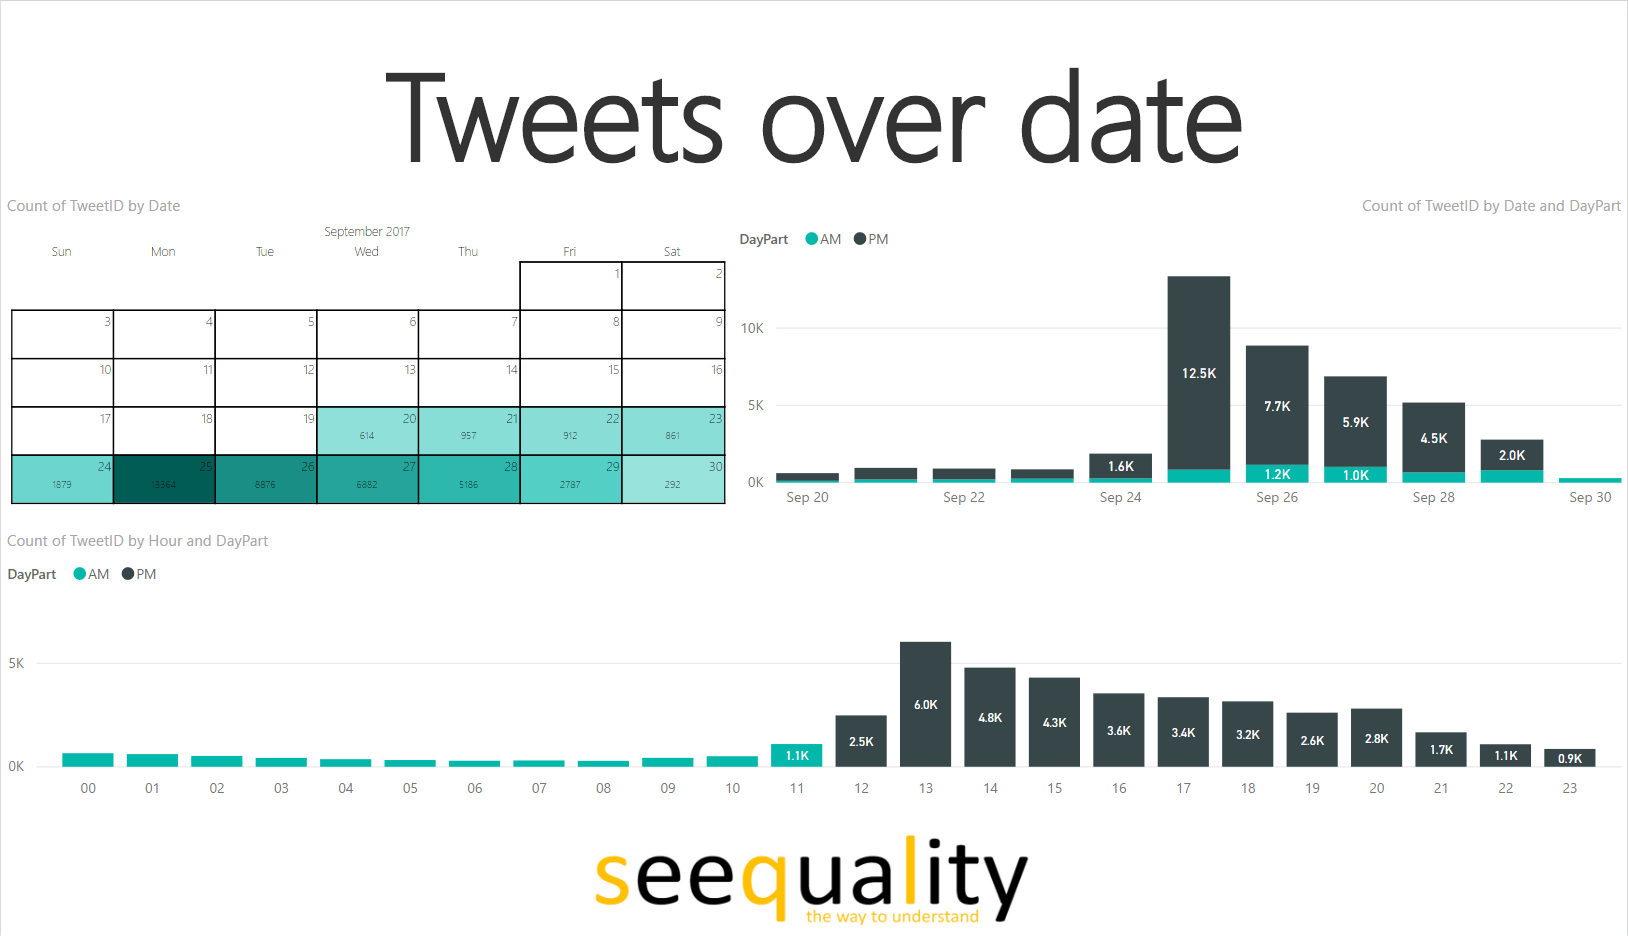 Power BI #msignite twitter analysis tweets over date 2017